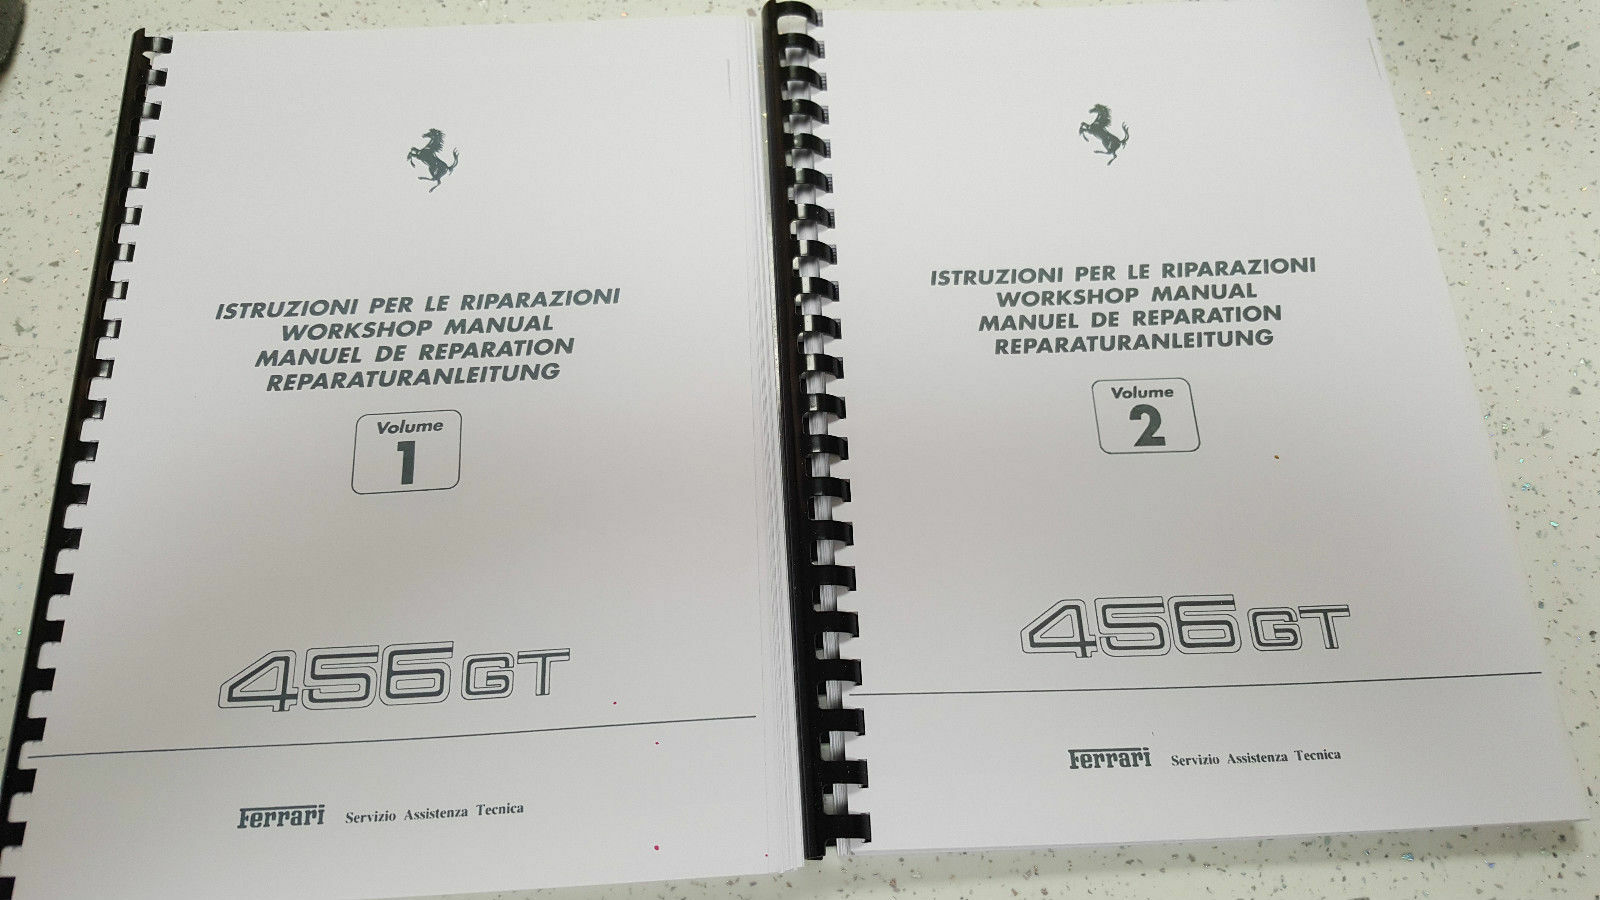 Ferrari 456 Gt Workshop Manual Reprinted - Wiring Diagrams Are For The 456M  1 of 9FREE Shipping ...